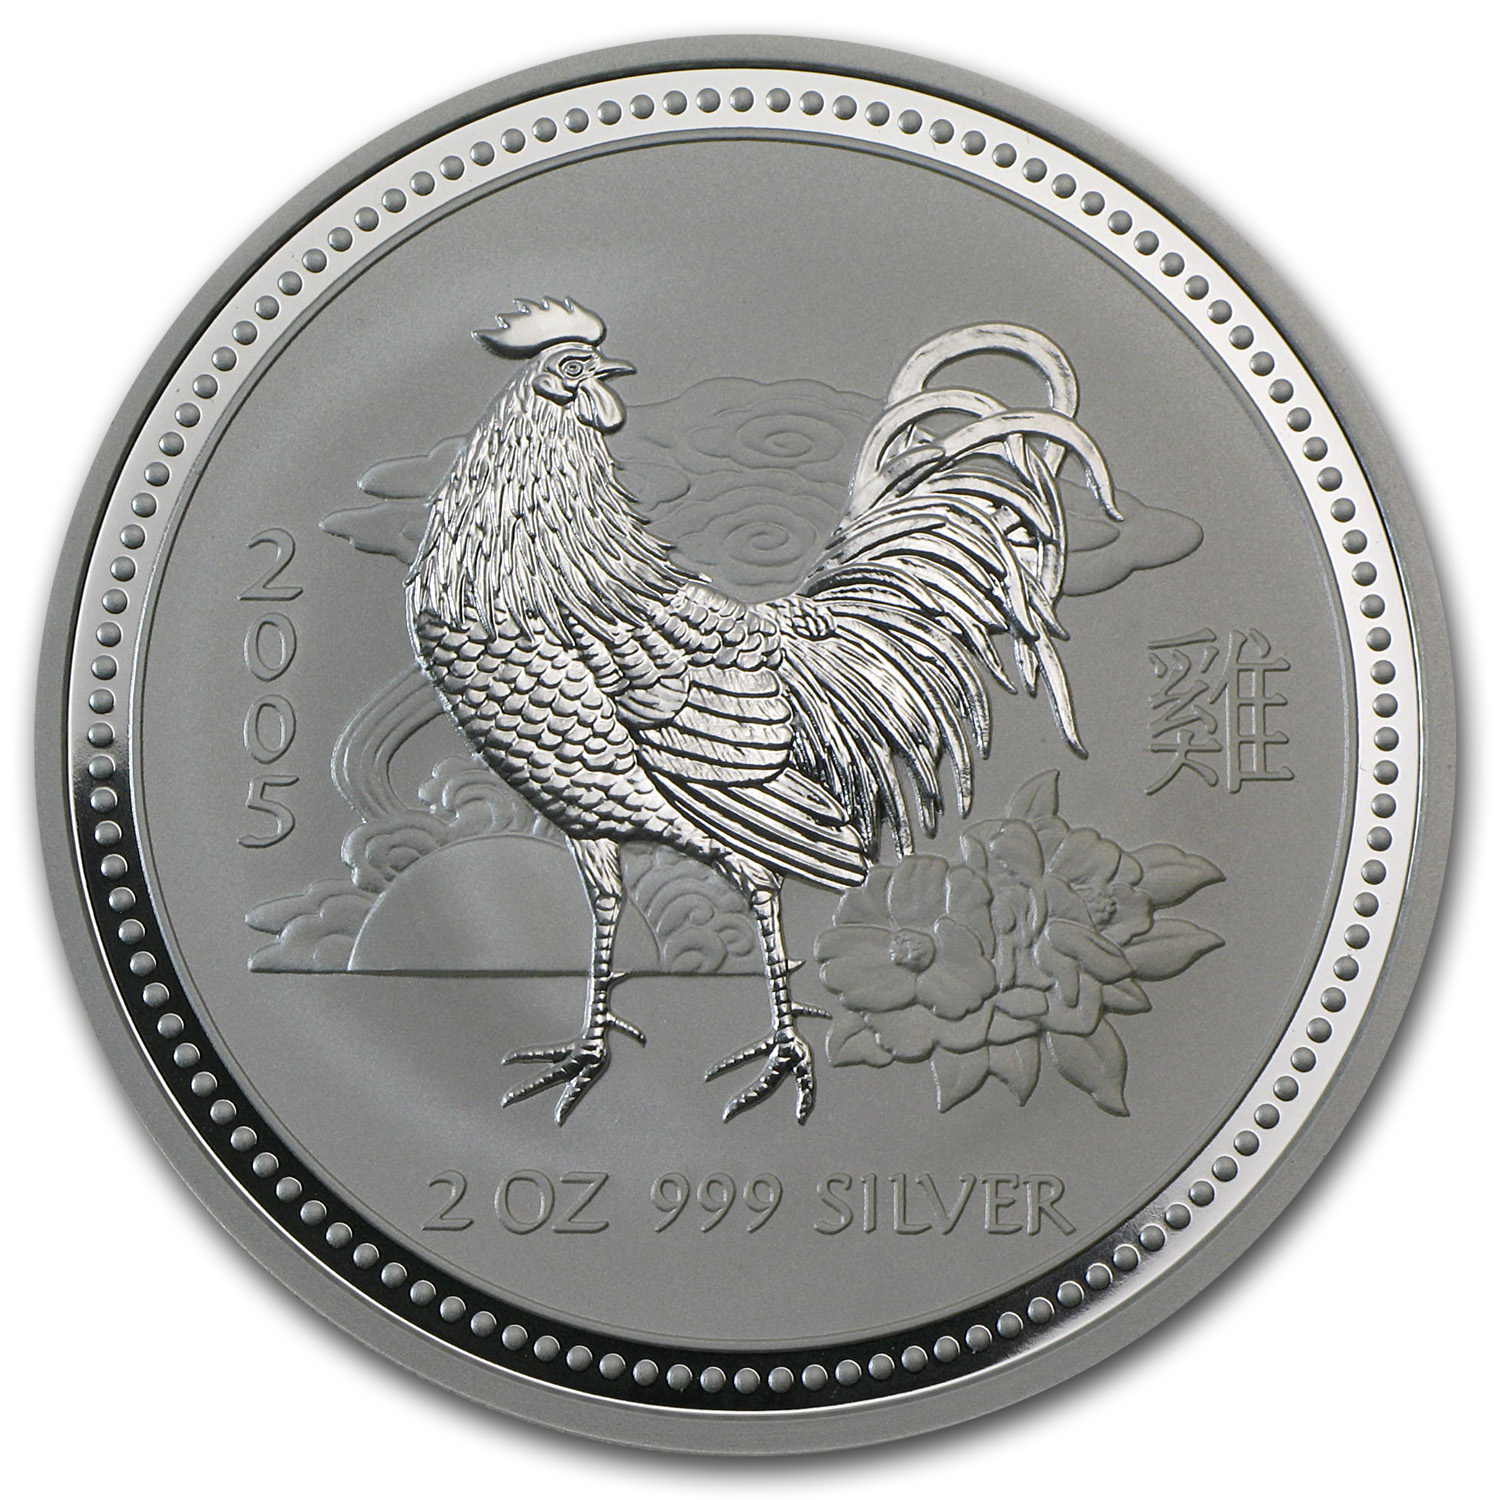 2005 2 oz Silver Australian Year of the Rooster BU